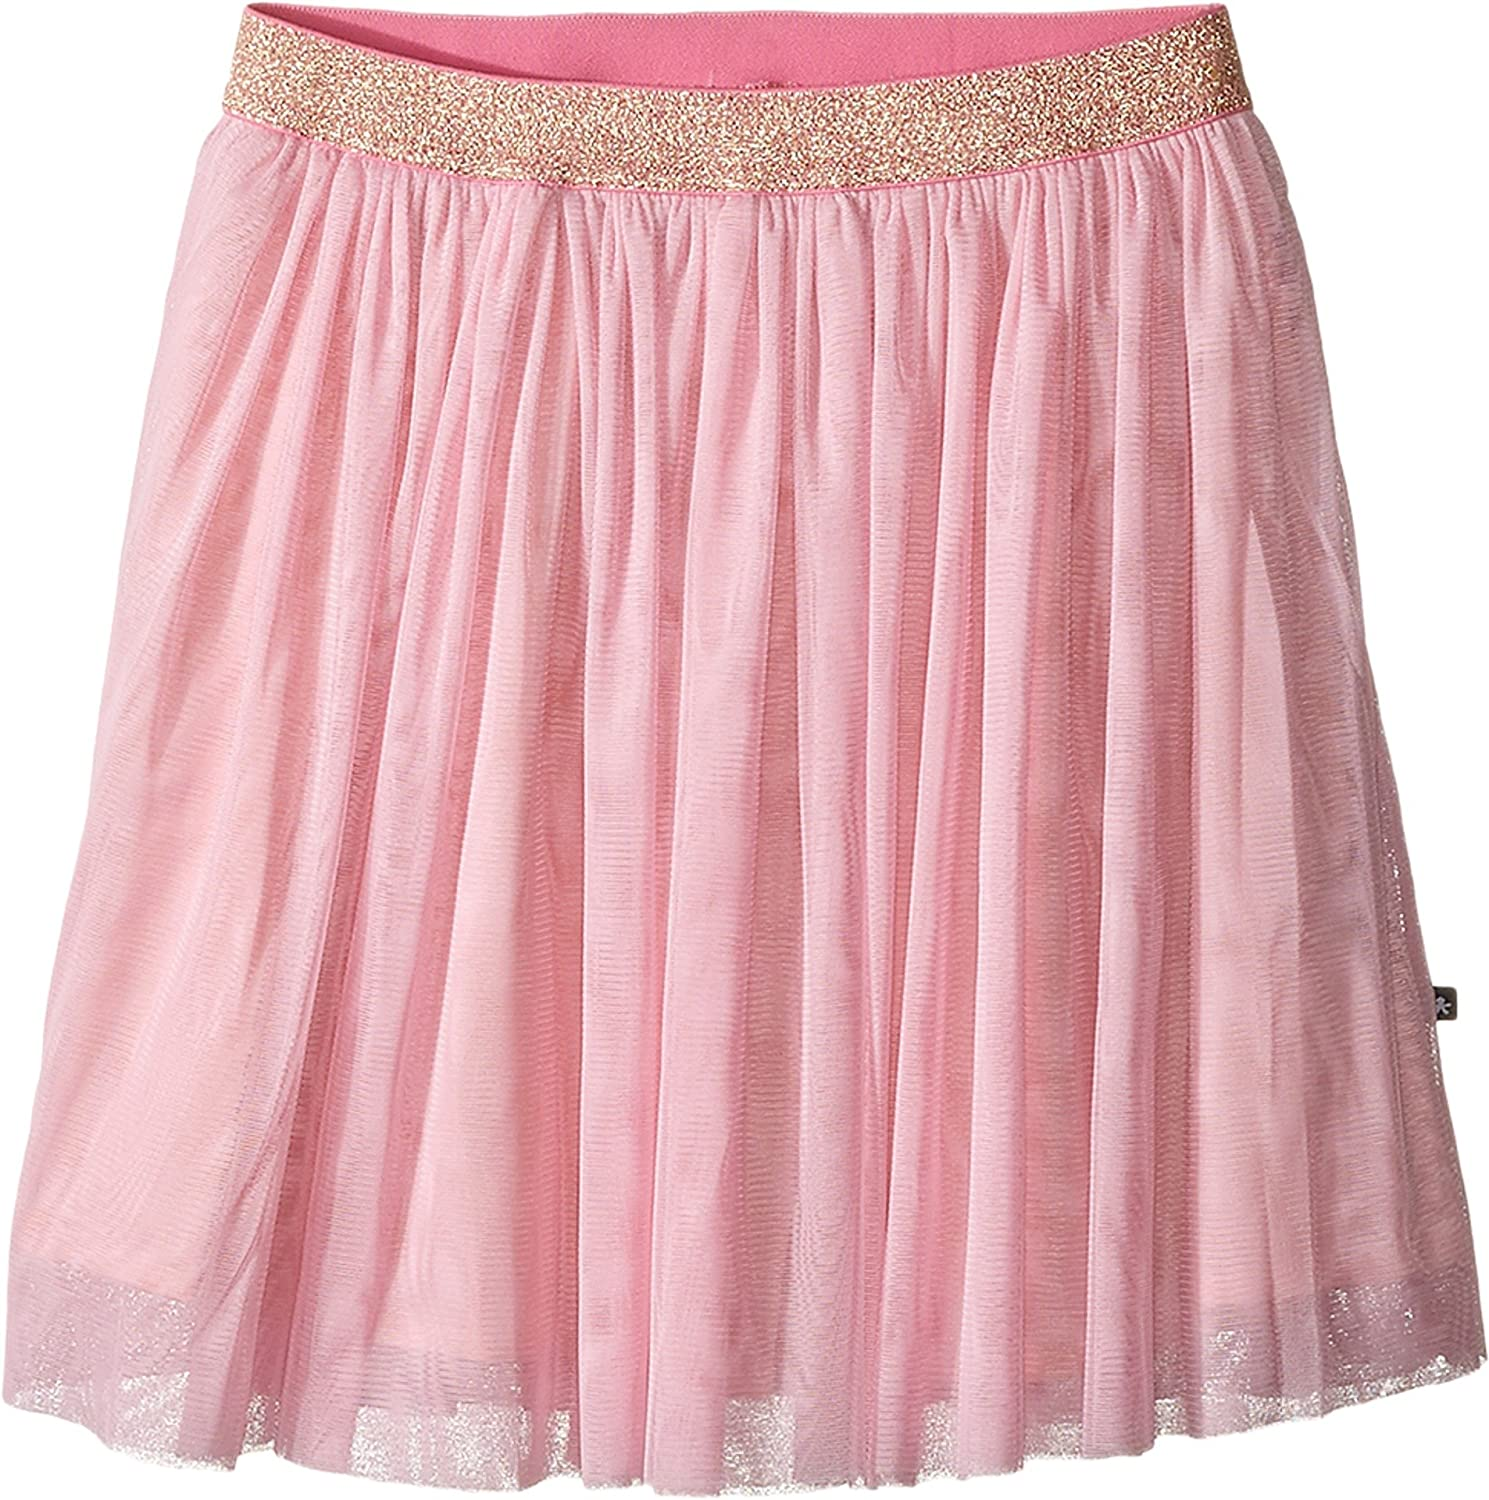 Toobydoo Baby Girls Twirl Me Pink Tulle Skirt Toddler//Little Kids//Big Kids